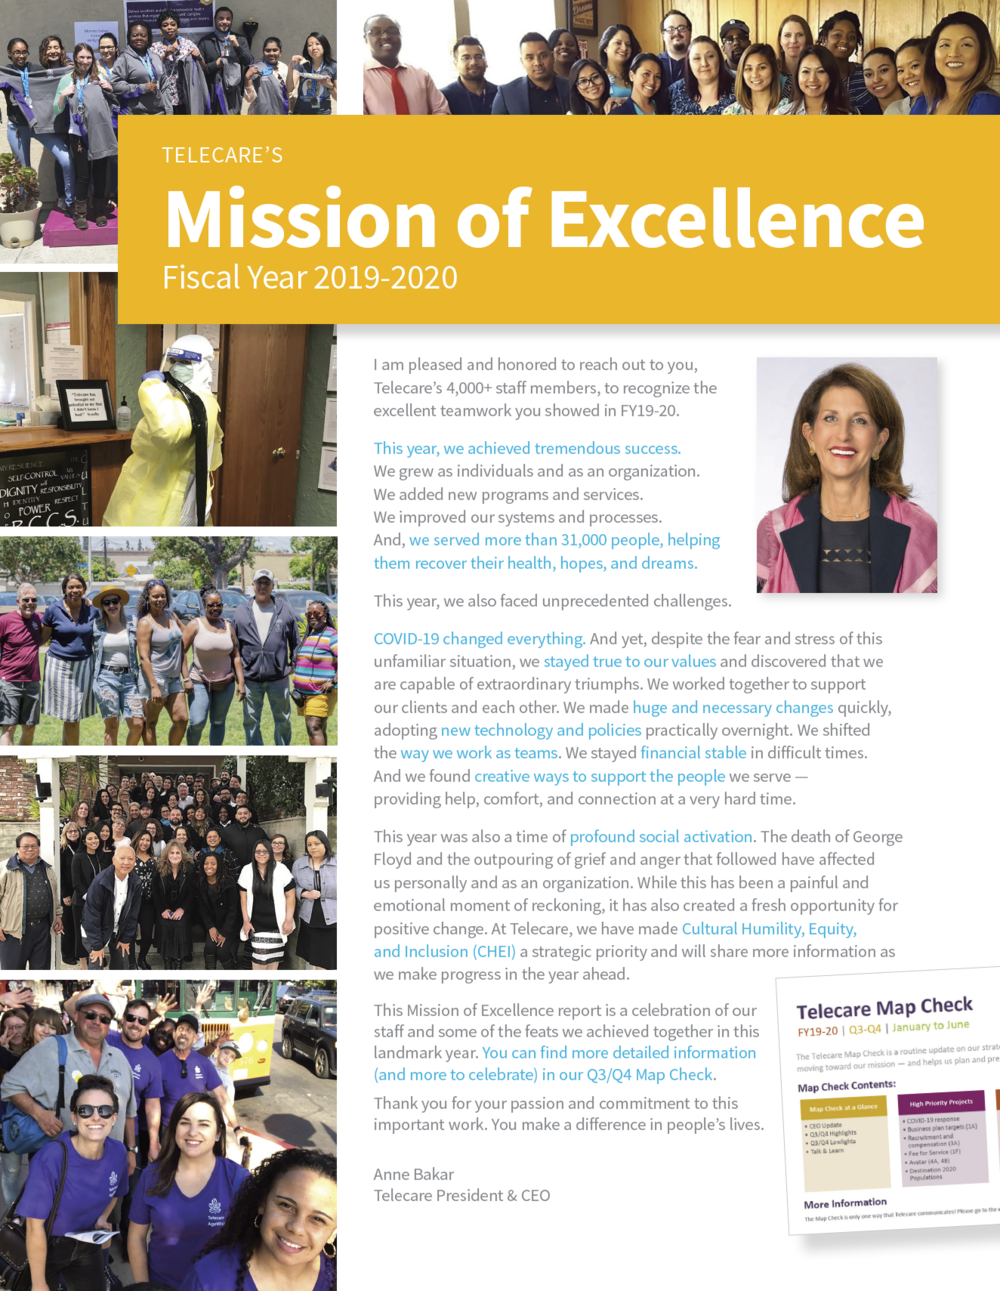 Telecare Mission of Excellence_FY19-20_vFINAL for Web.PNG